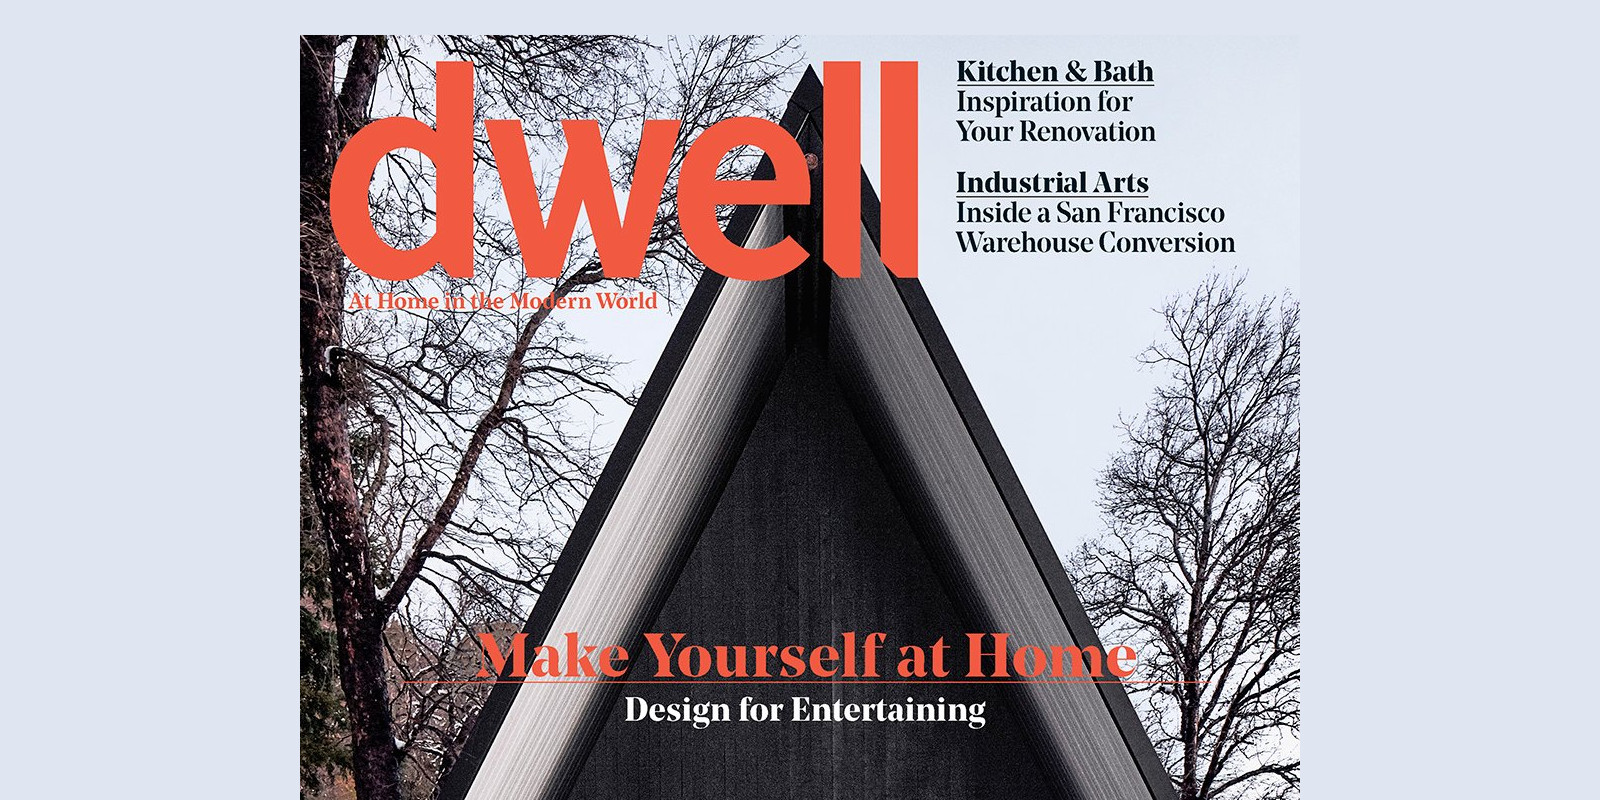 Magazine subs from $5/yr.: Dwell, Arch Digest, Bon Appetit, GQ, many more - 9to5Toys